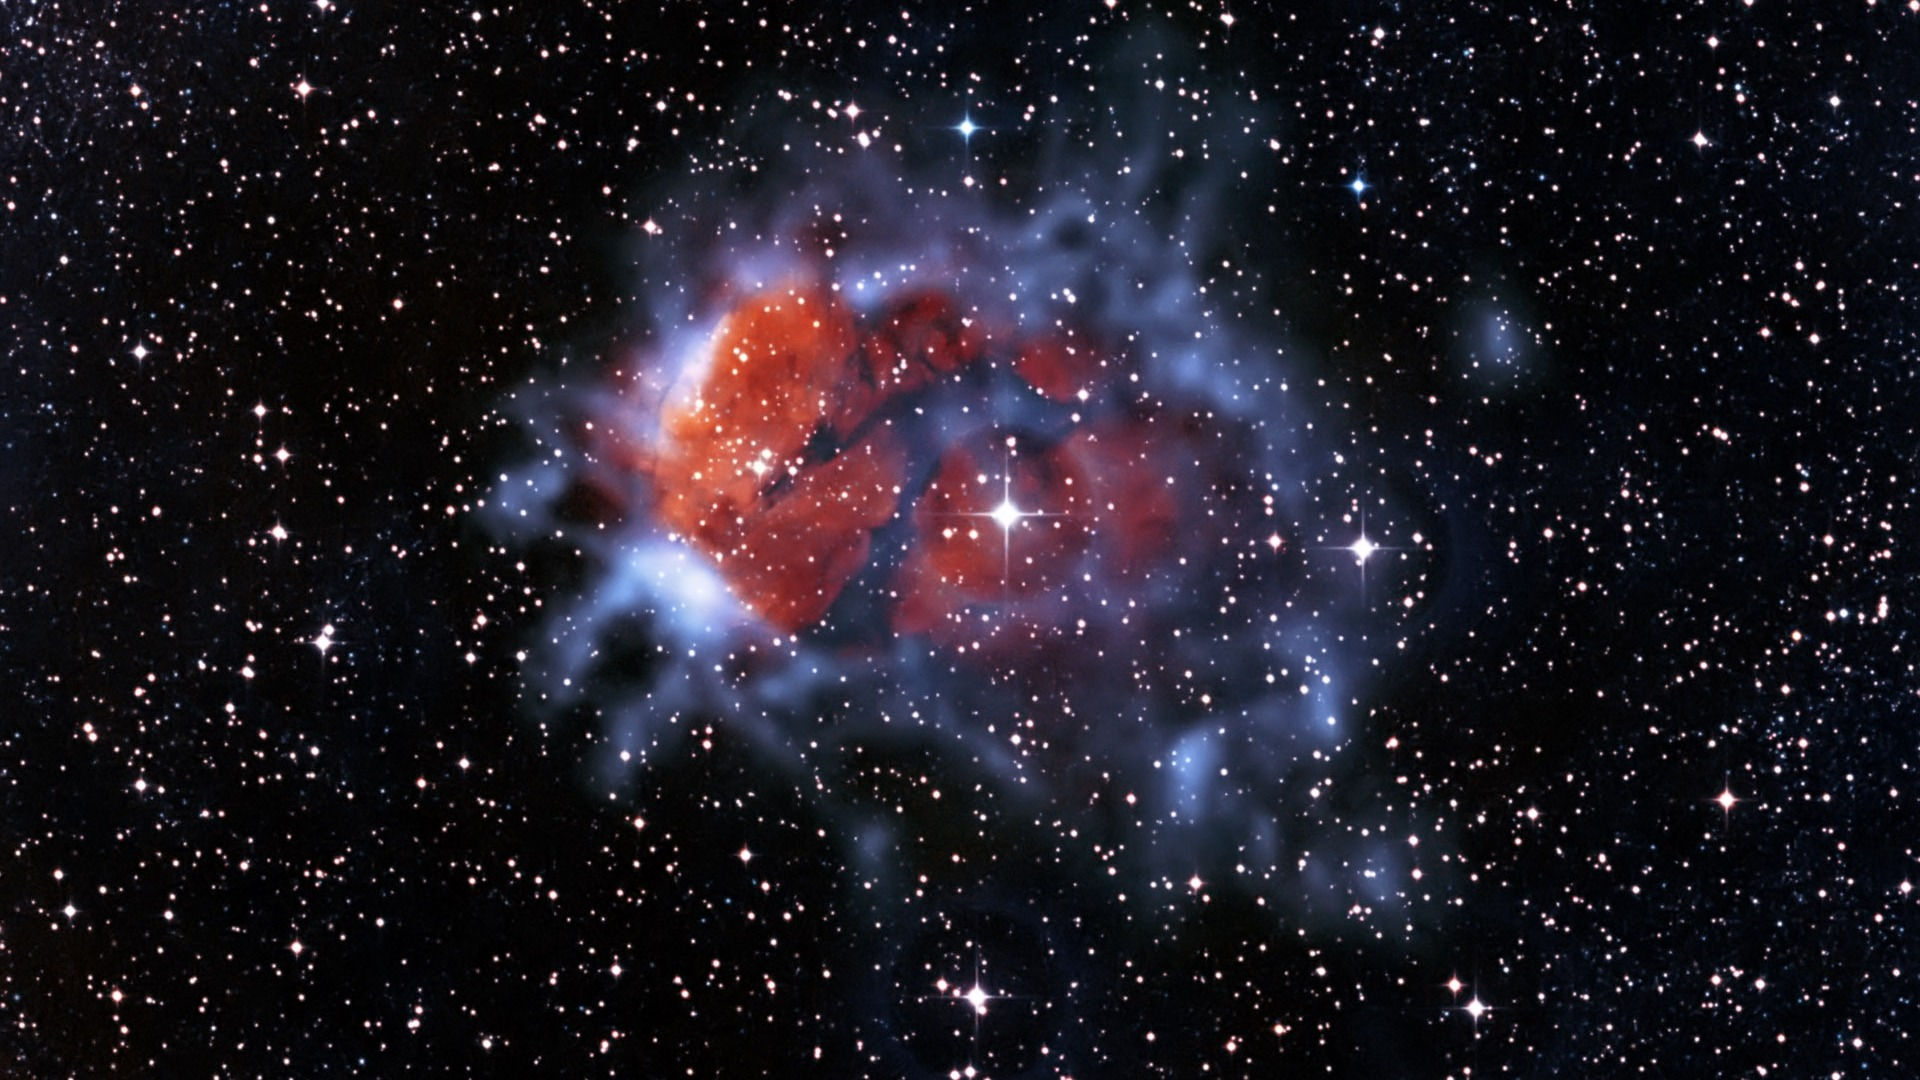 hd wallpapers 1080p hubble space - photo #39